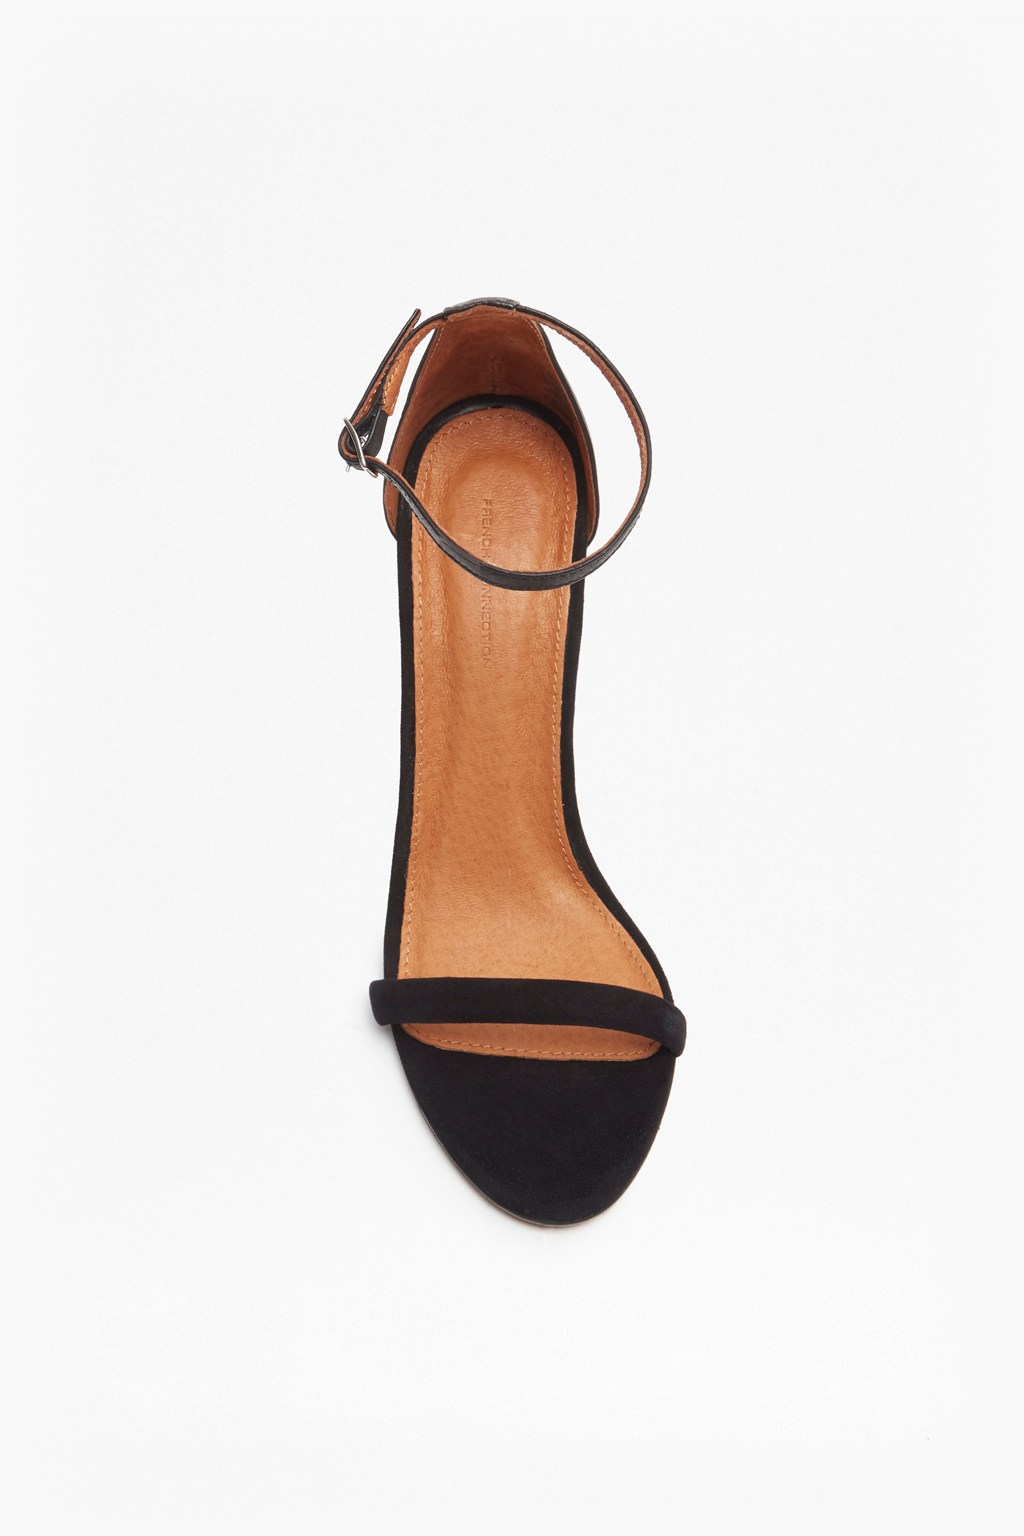 2b20c059e2f ... Elena Strappy Leather Heeled Sandals. loading images.